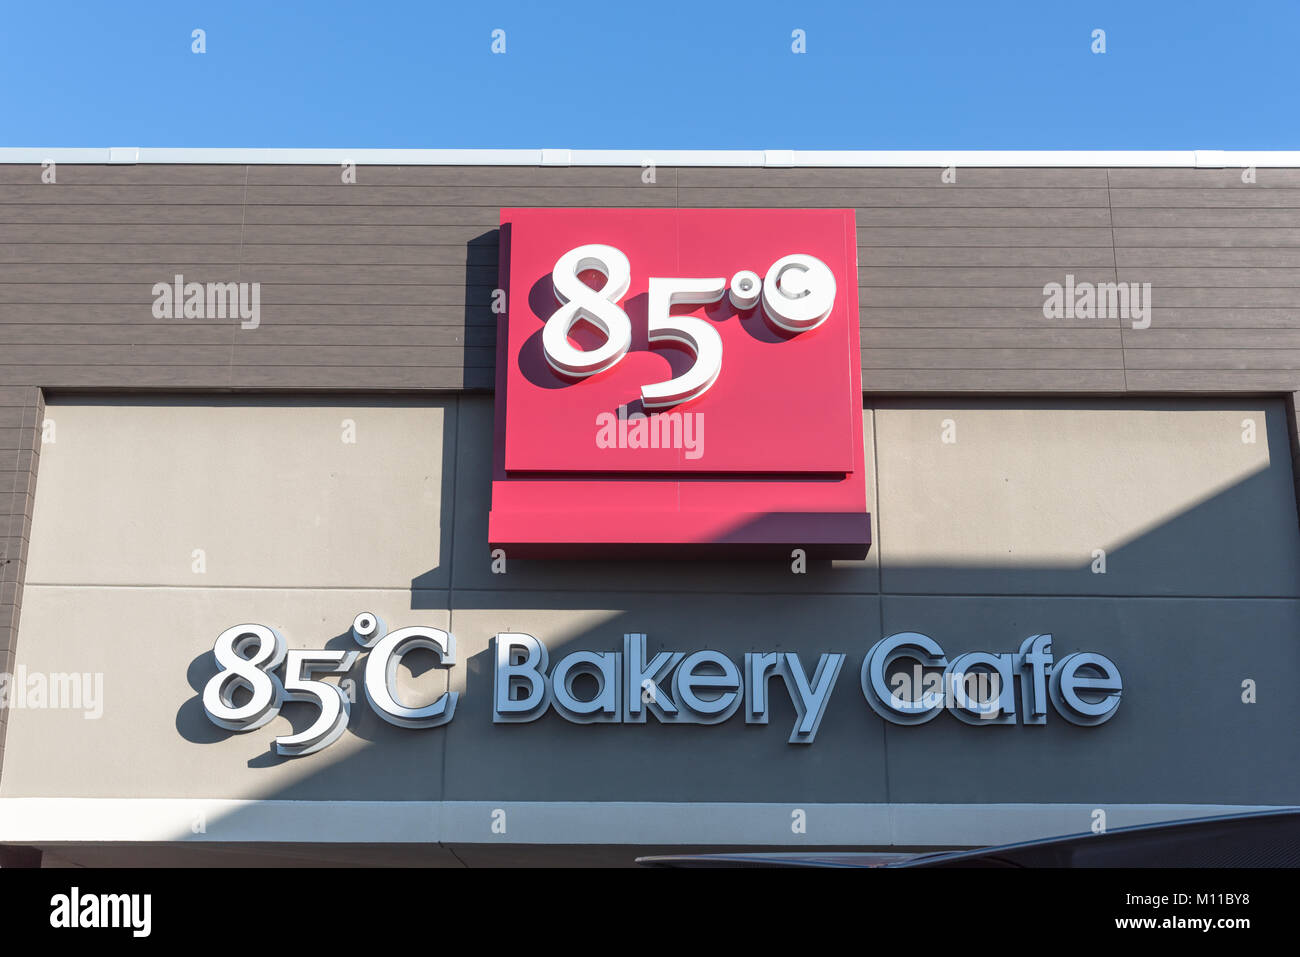 85 C Bakery Cafe founded in 2003 by Wu Cheng-Hsueh - Stock Image